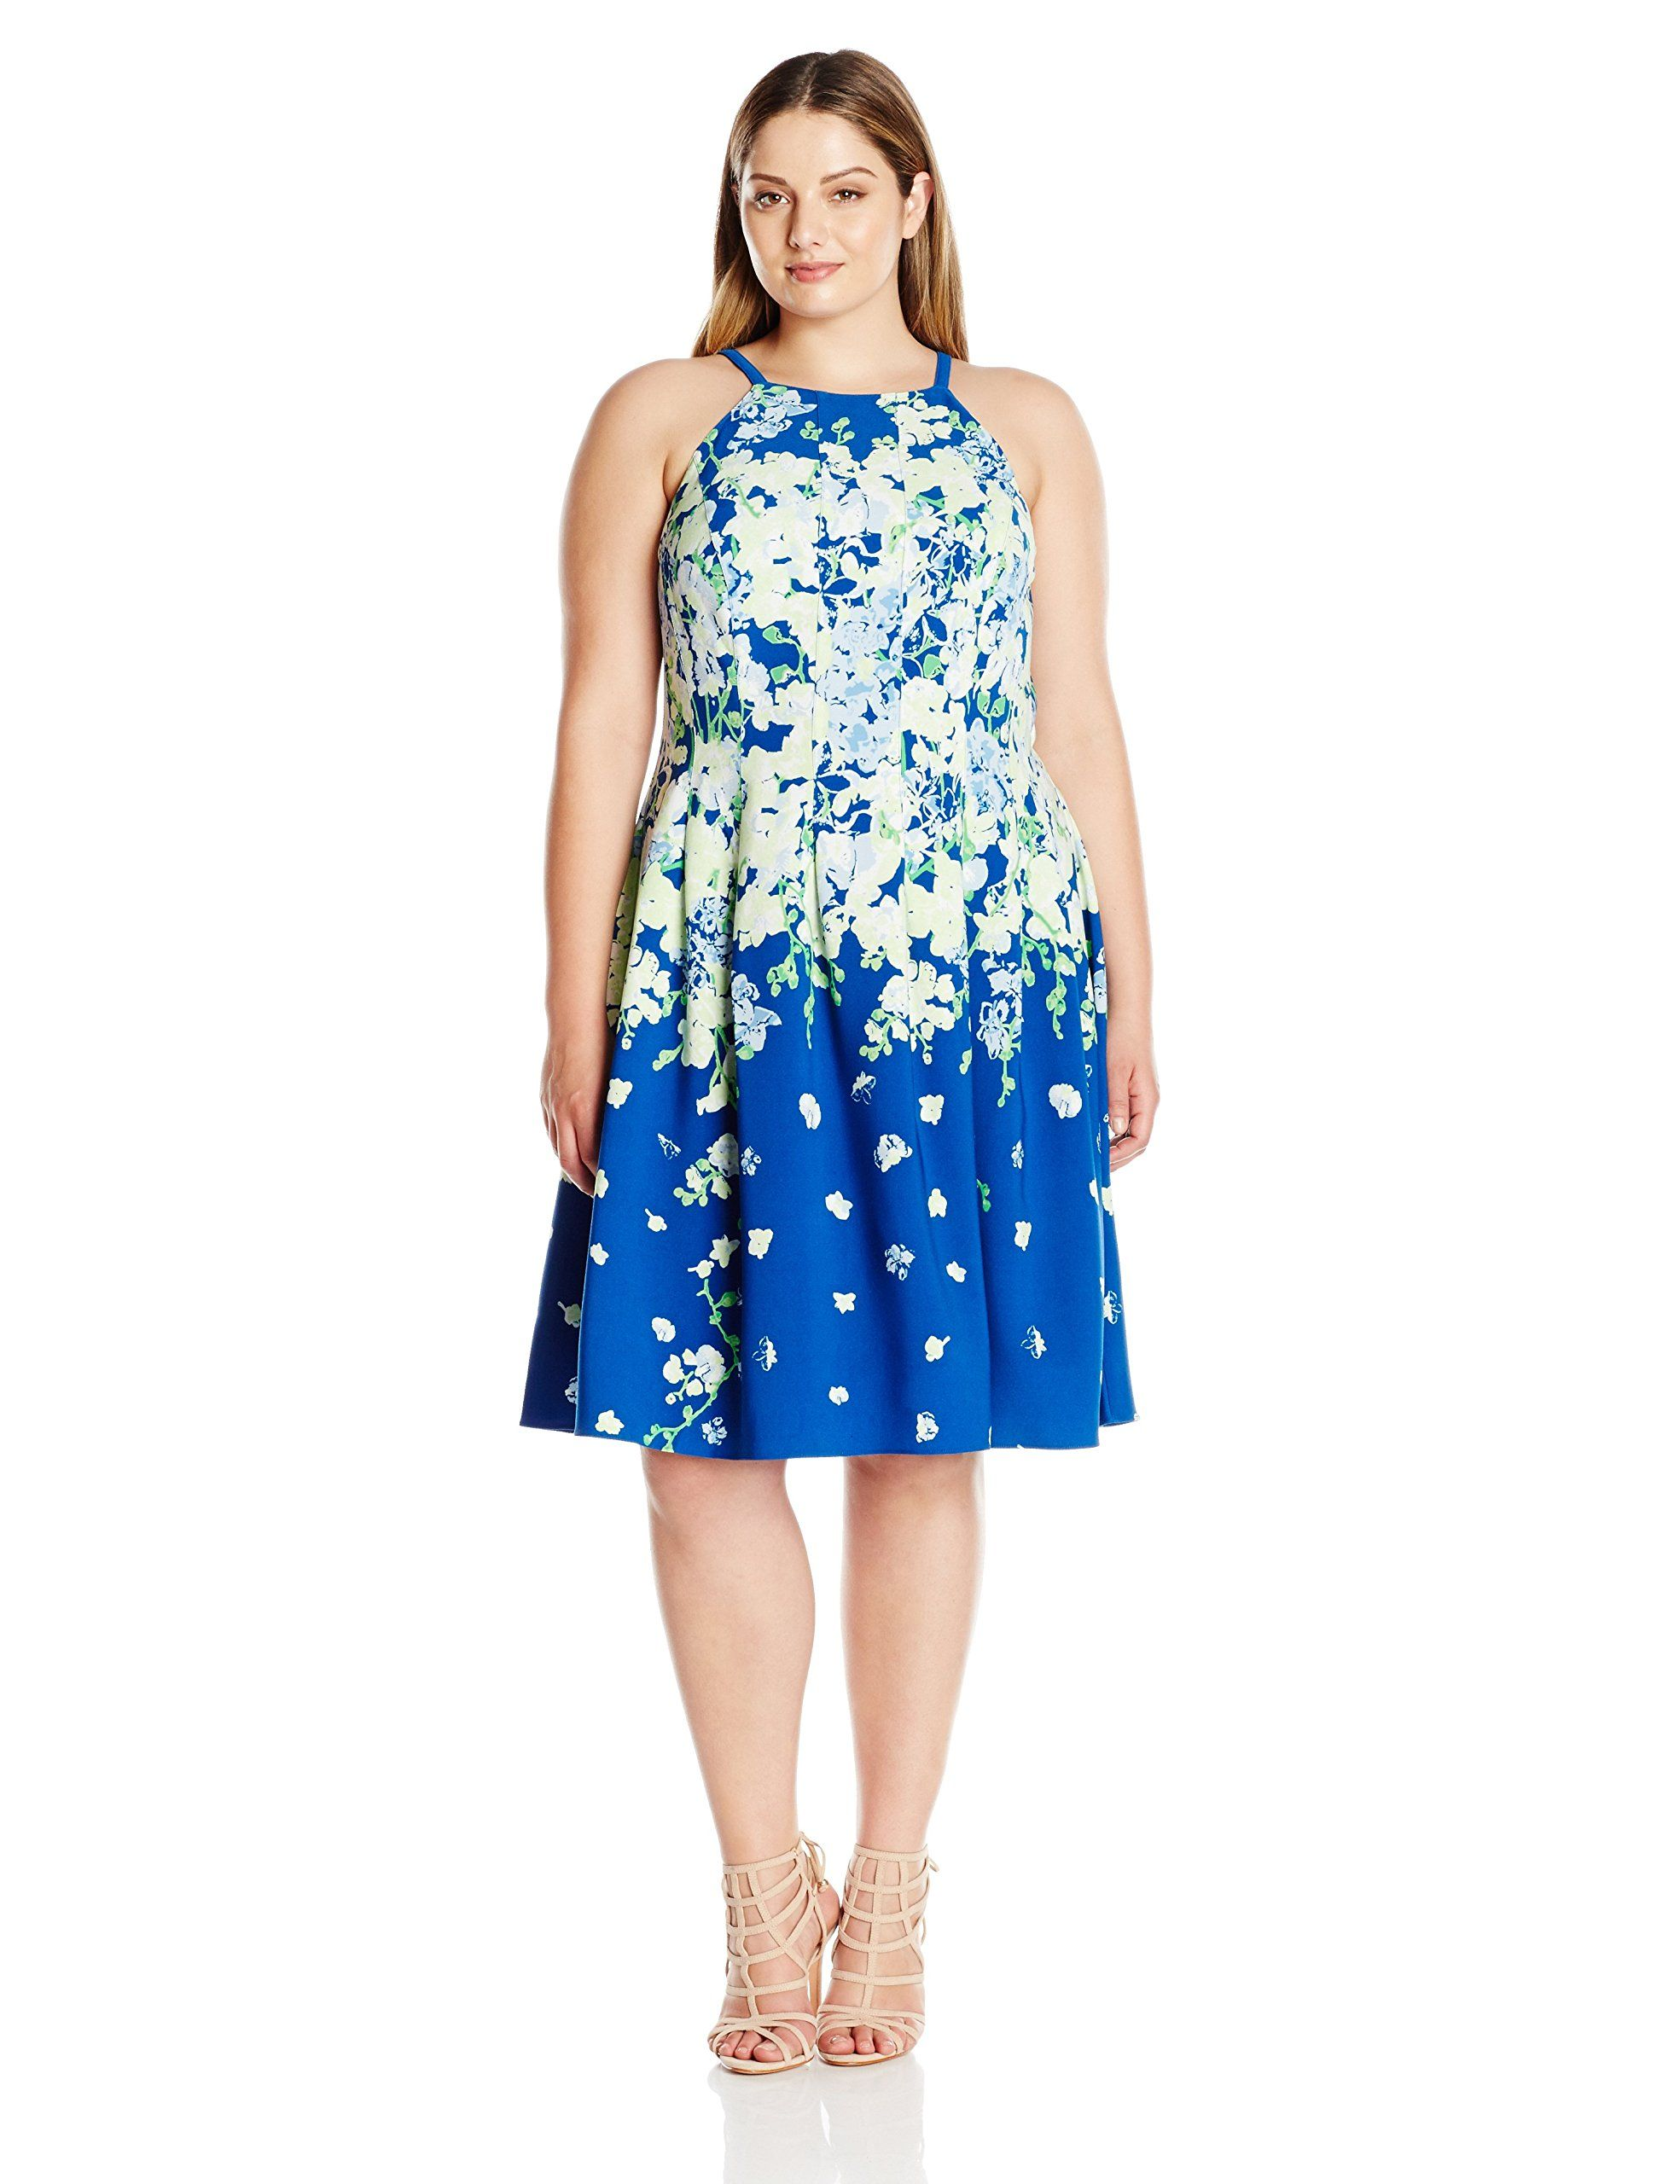 Adrianna Papell Womens Plus Size Garden Party Placed Floral Print